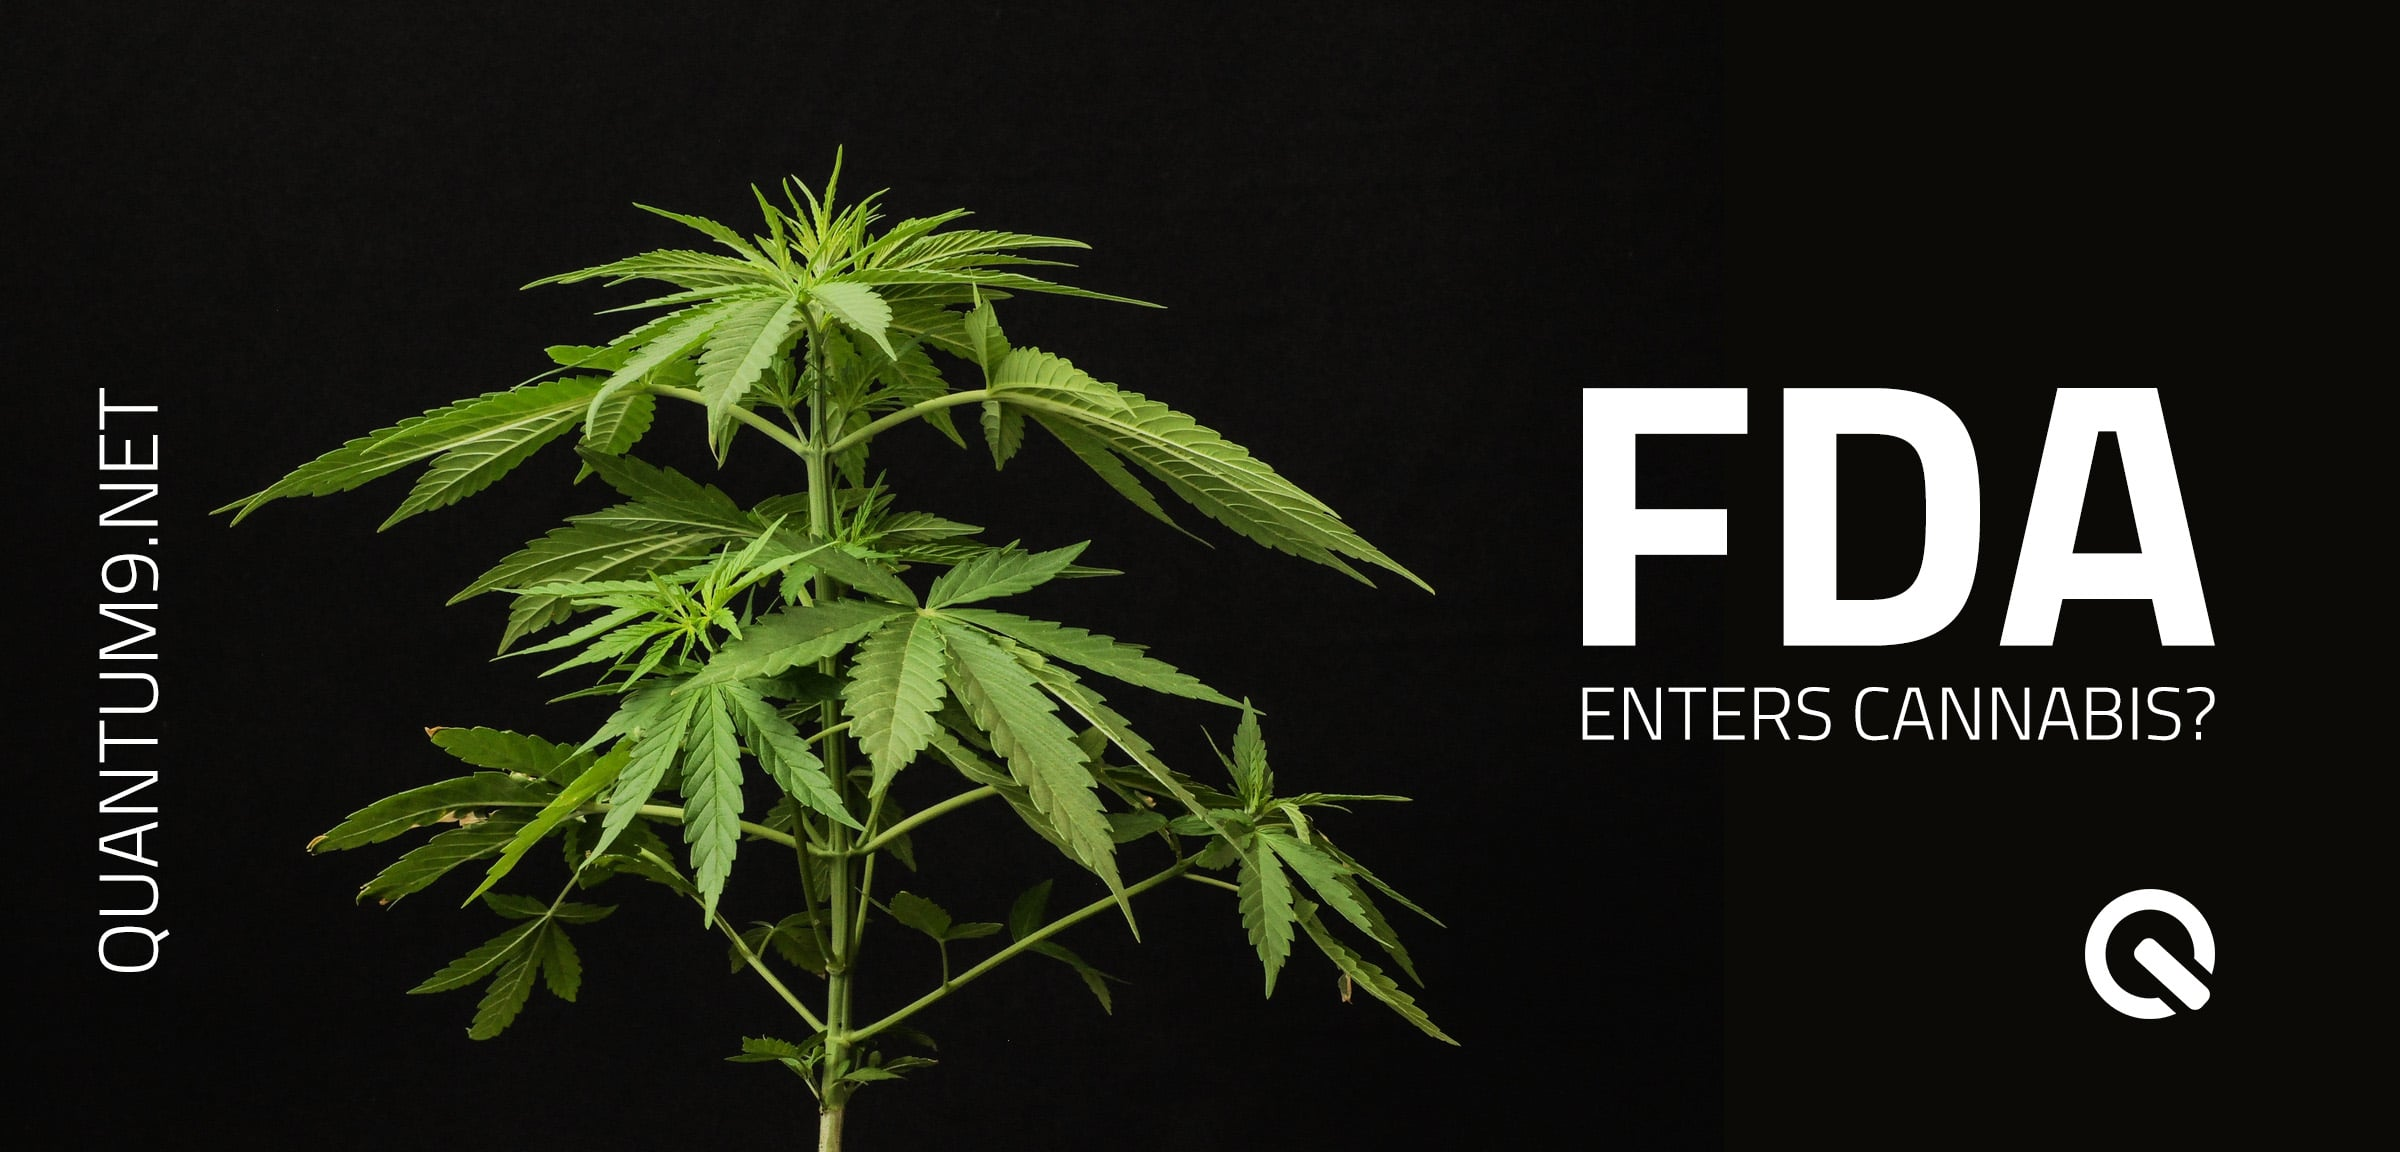 FDA Enters Cannabis